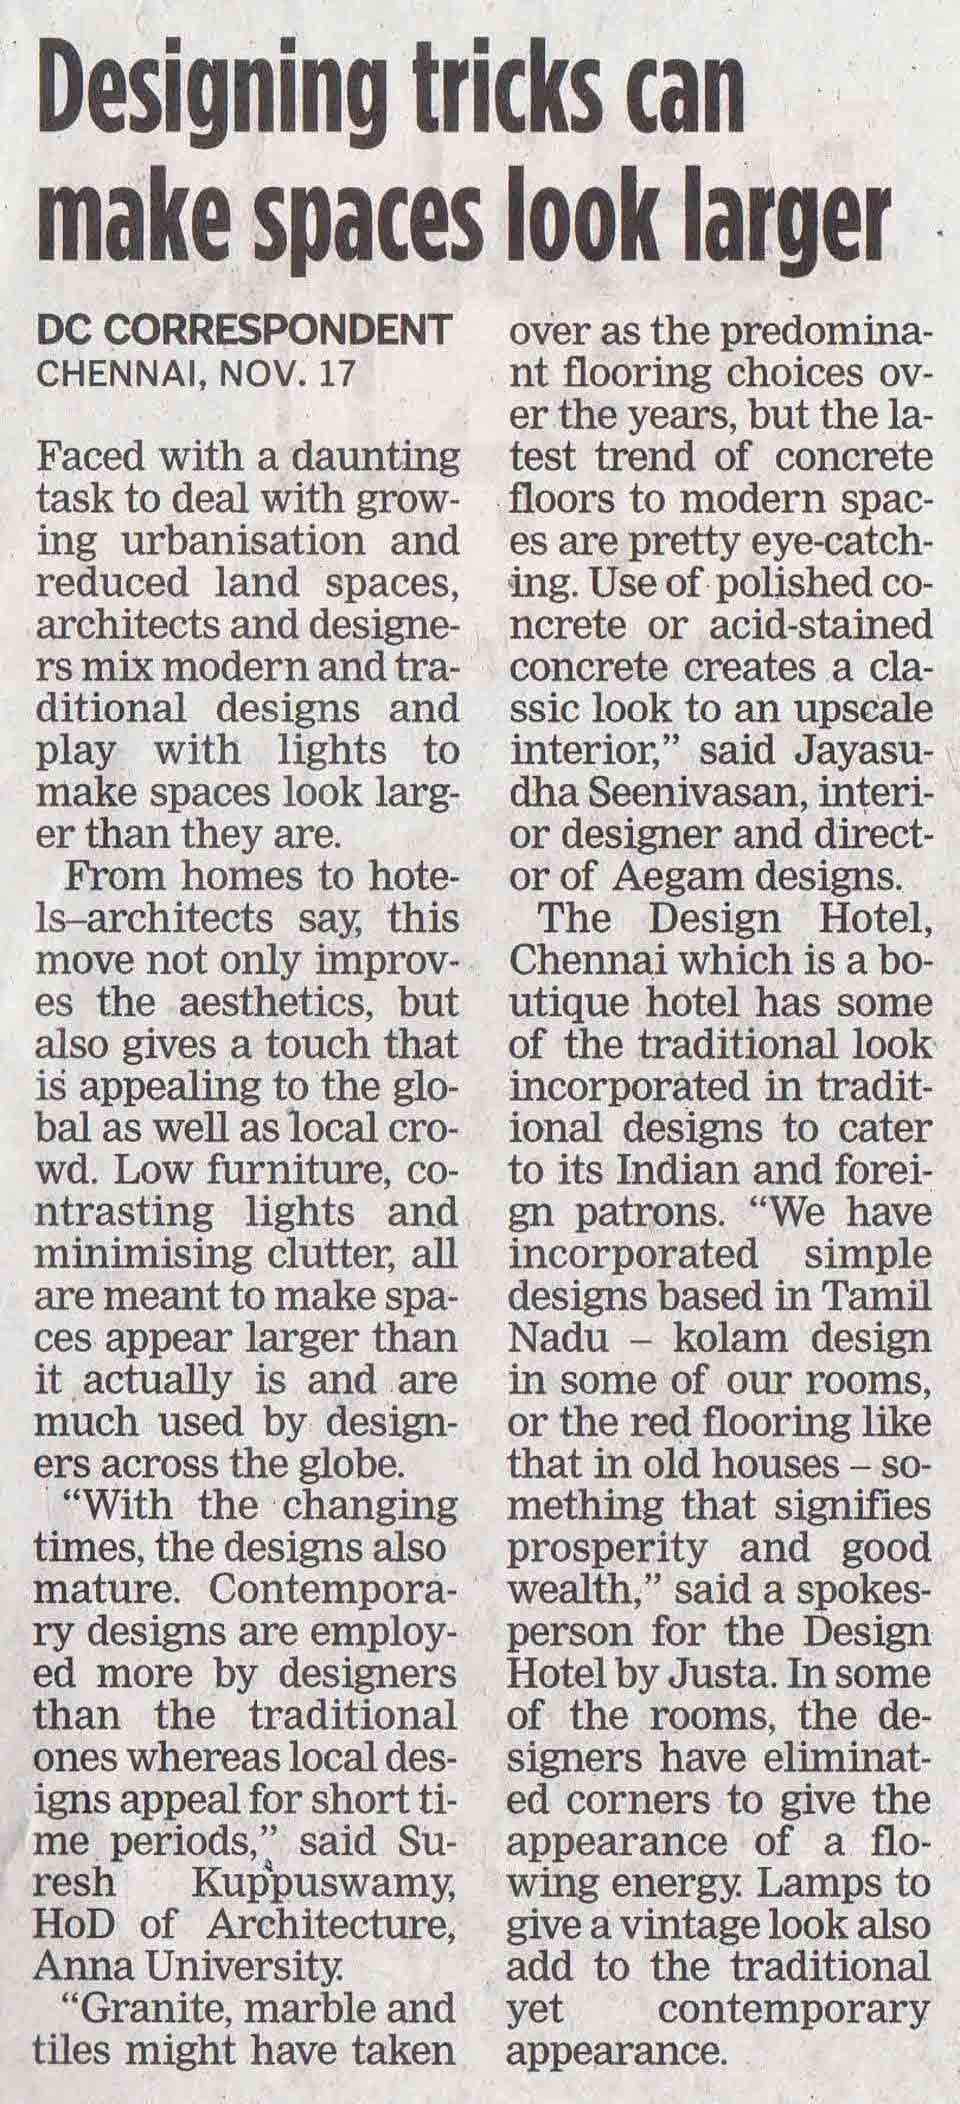 annam-cafe-at-design-hotel-chennai-featured-in-deccan-chronicle